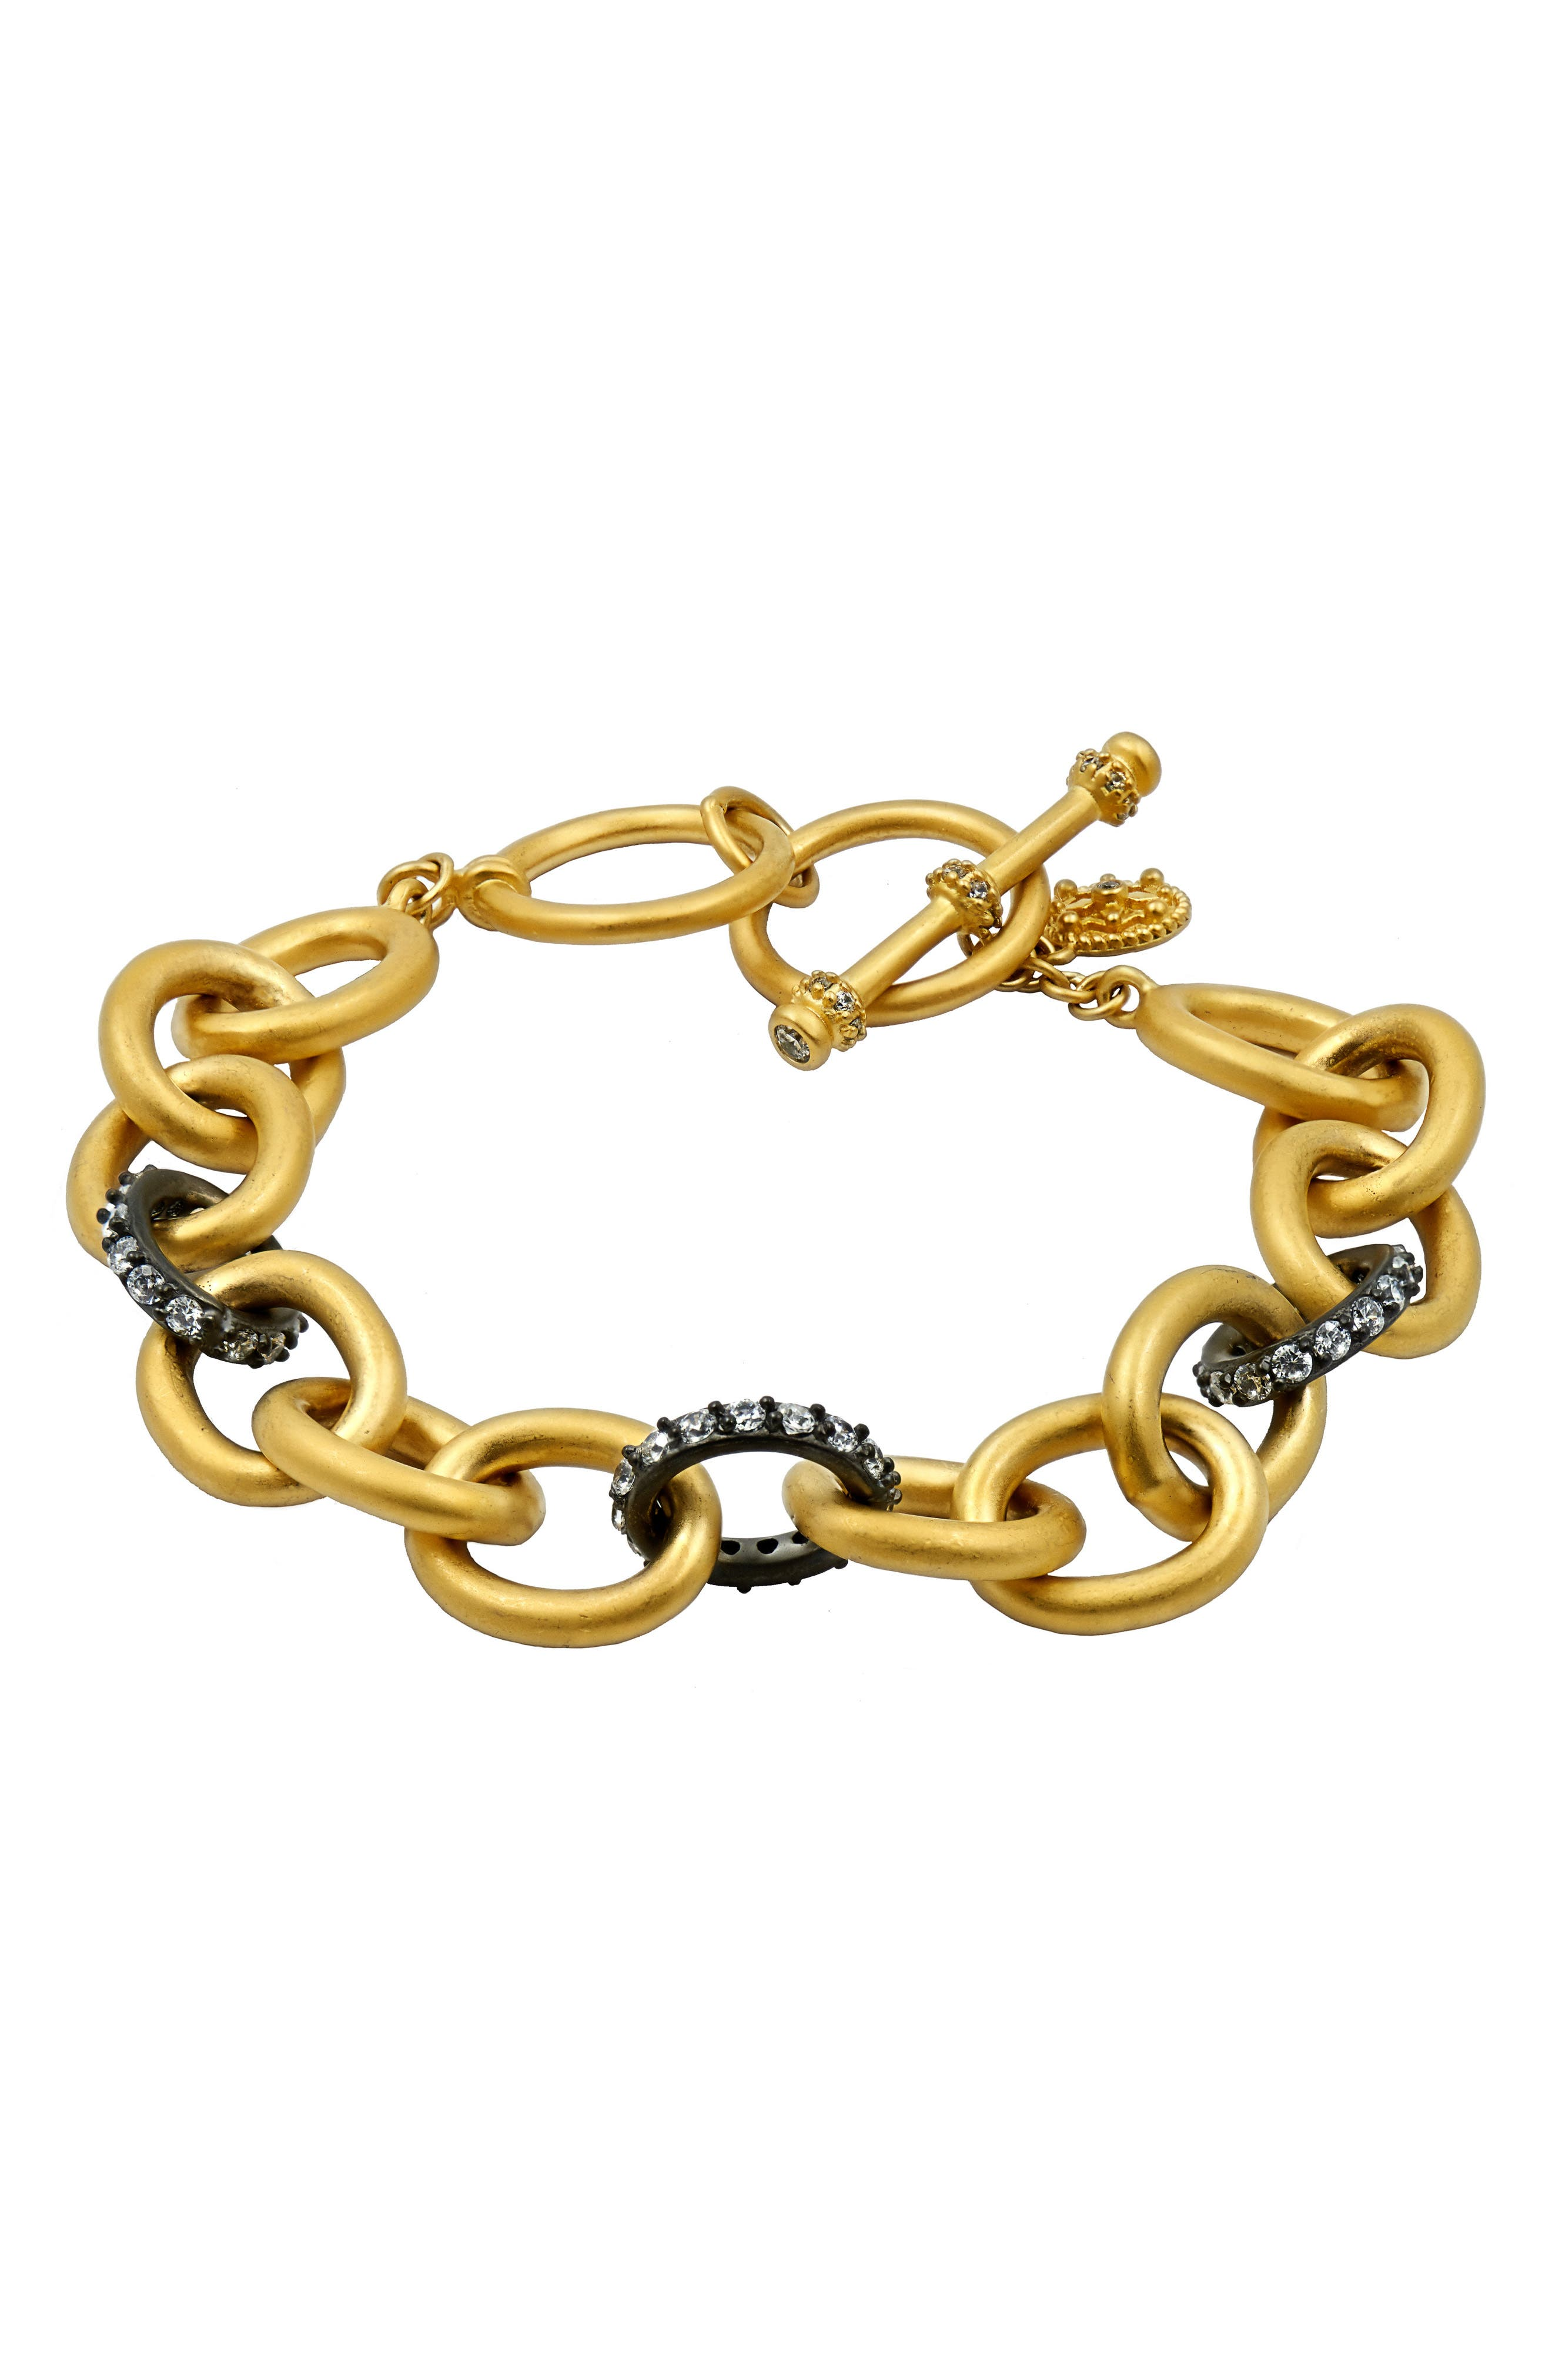 Signature Heavy Link Bracelet,                             Main thumbnail 1, color,                             GOLD/ BLACK